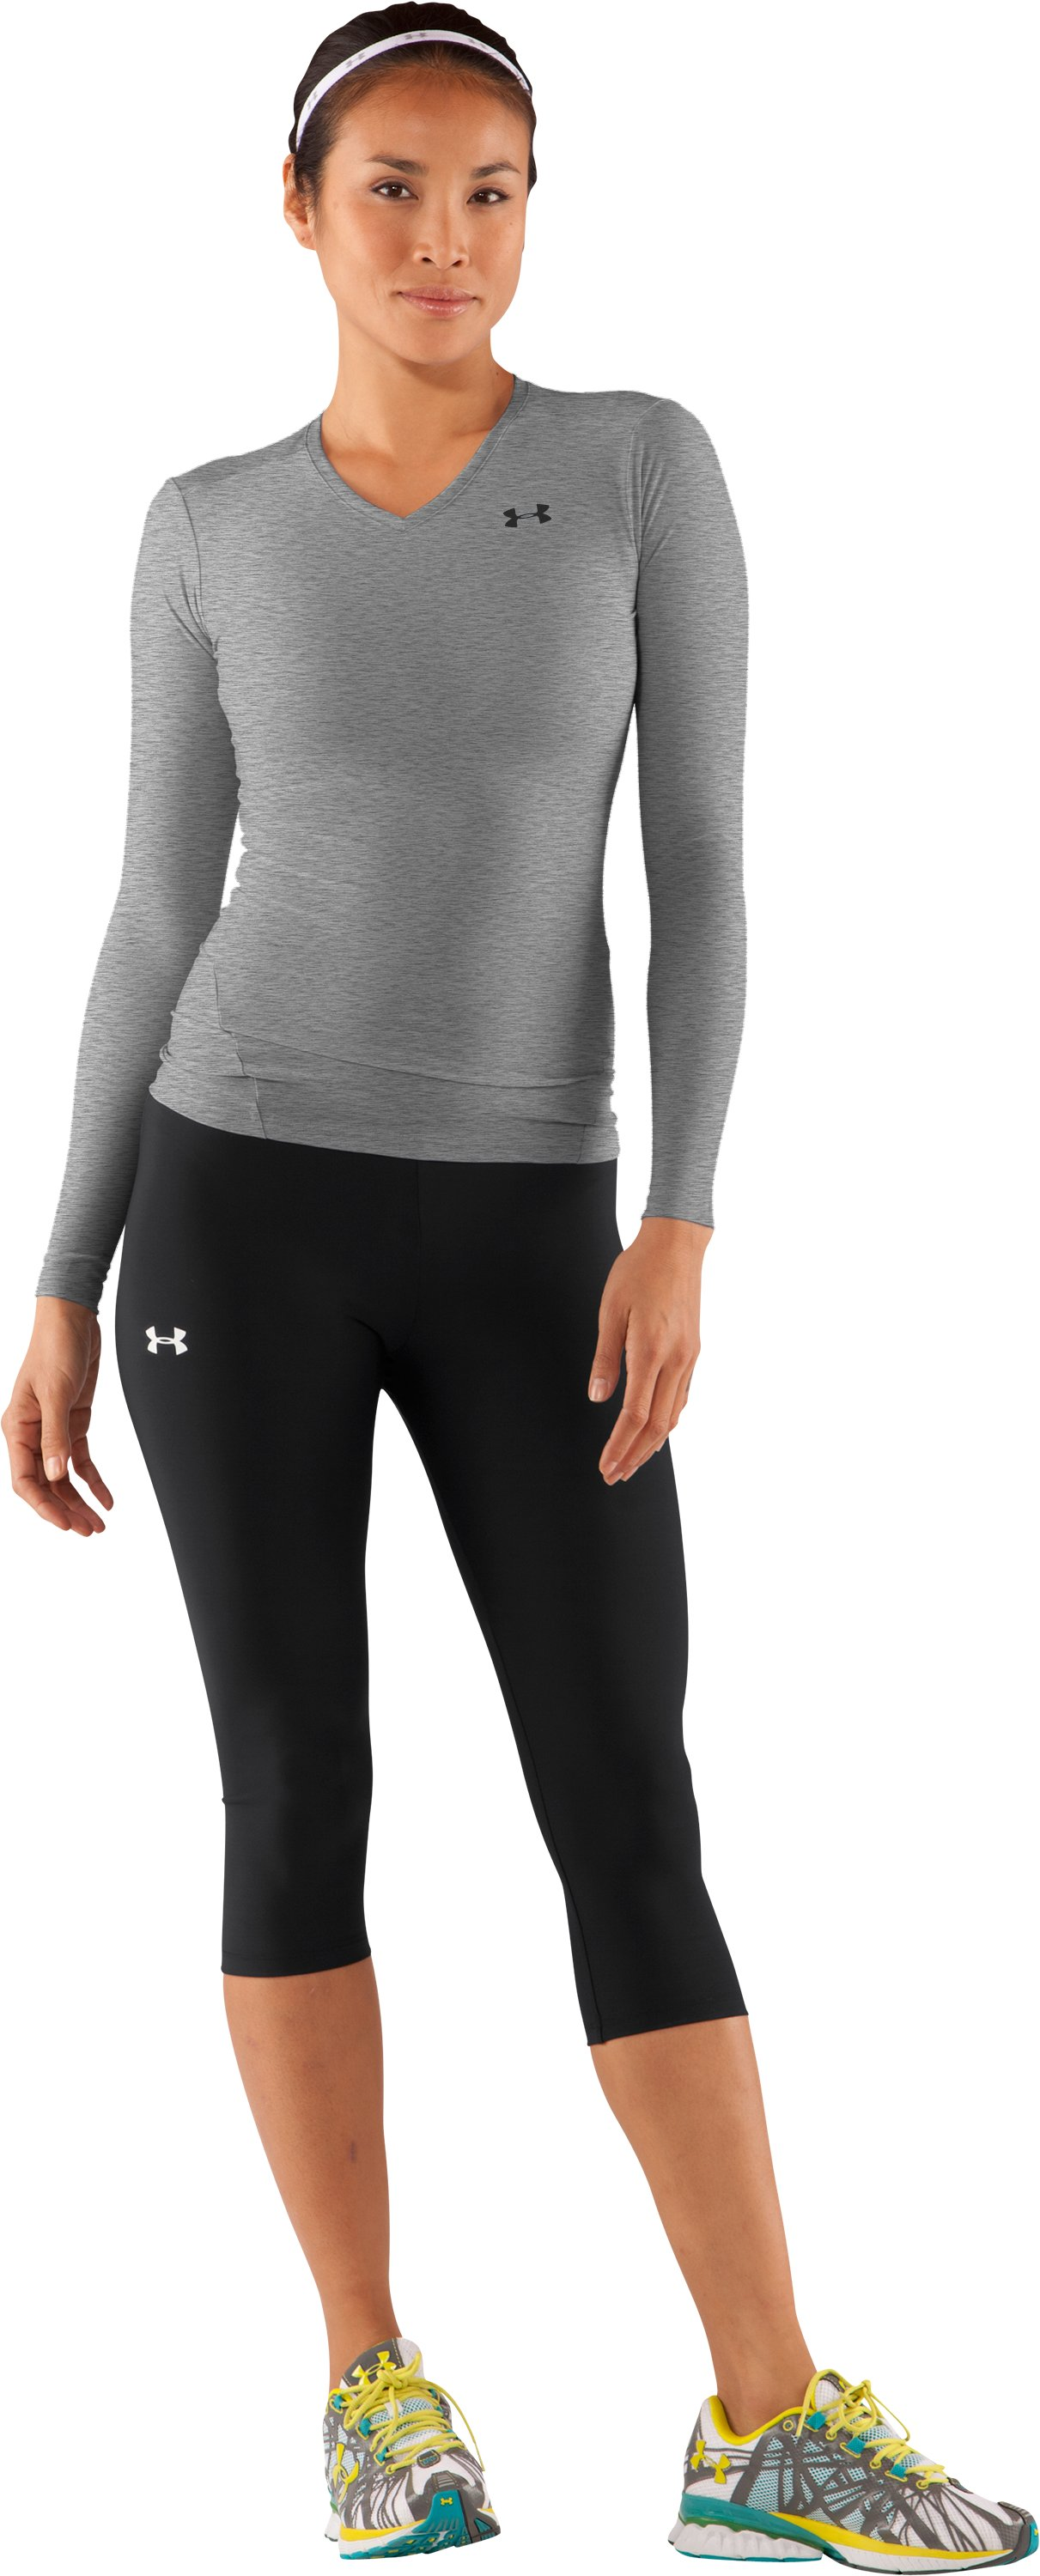 Women's HeatGear® Long Sleeve Compression T-Shirt, Medium Gray Heather, Front